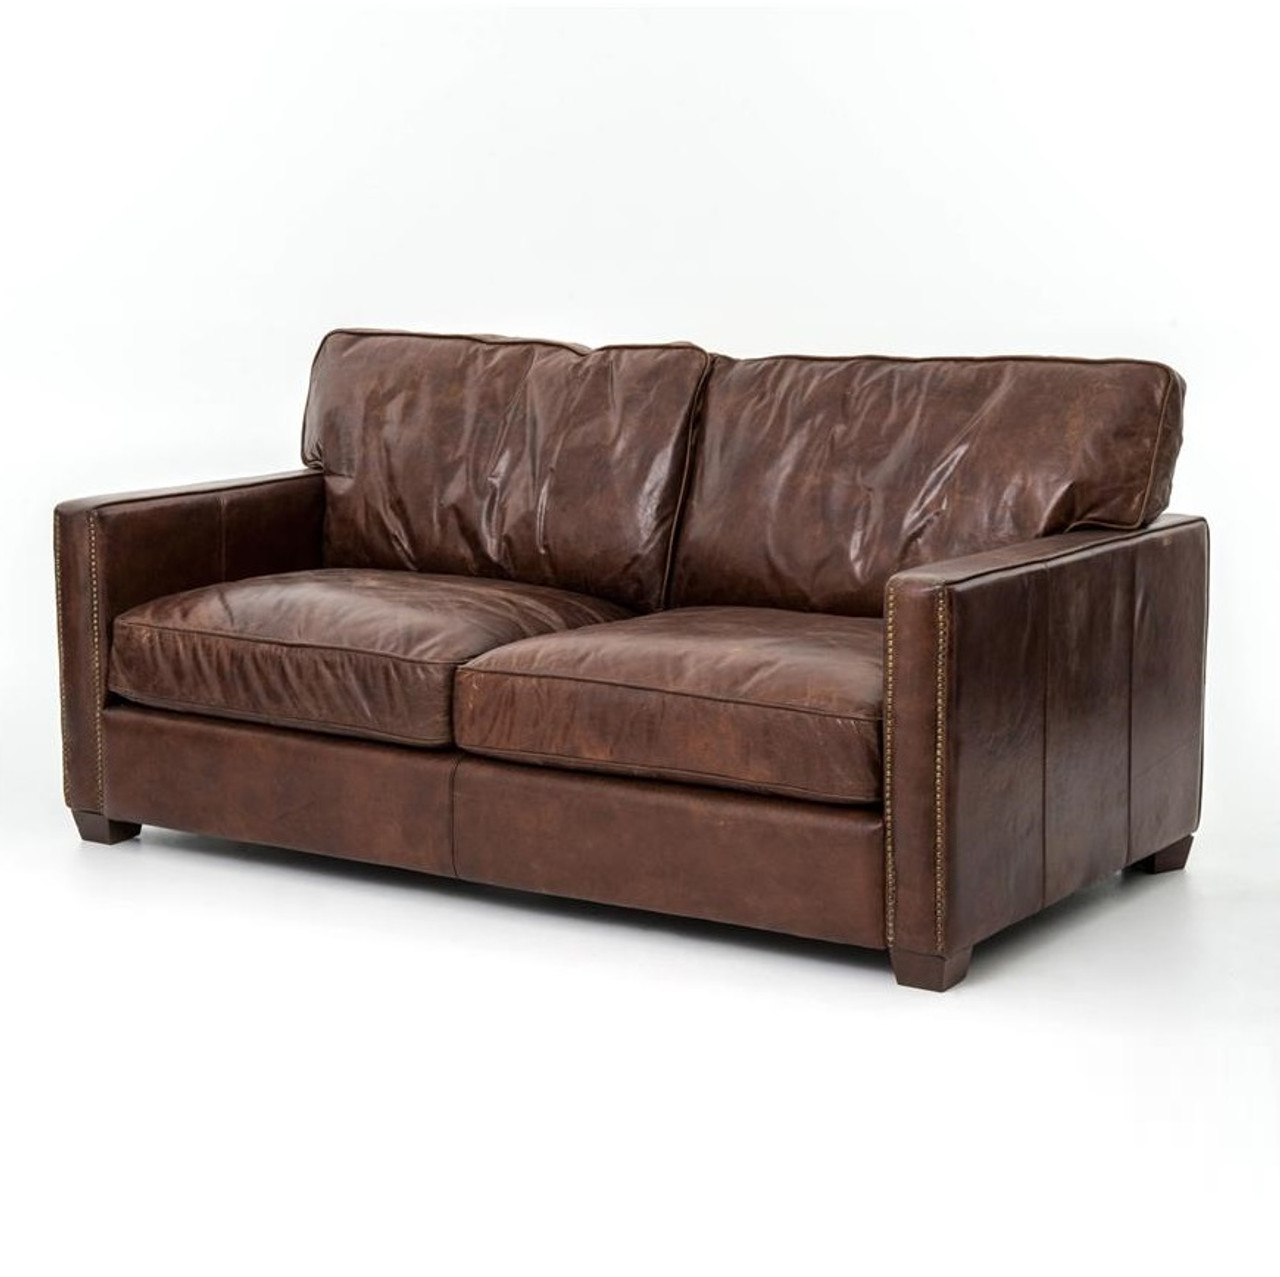 larkin 2 seater vintage cigar distressed leather sofa zin home. Black Bedroom Furniture Sets. Home Design Ideas